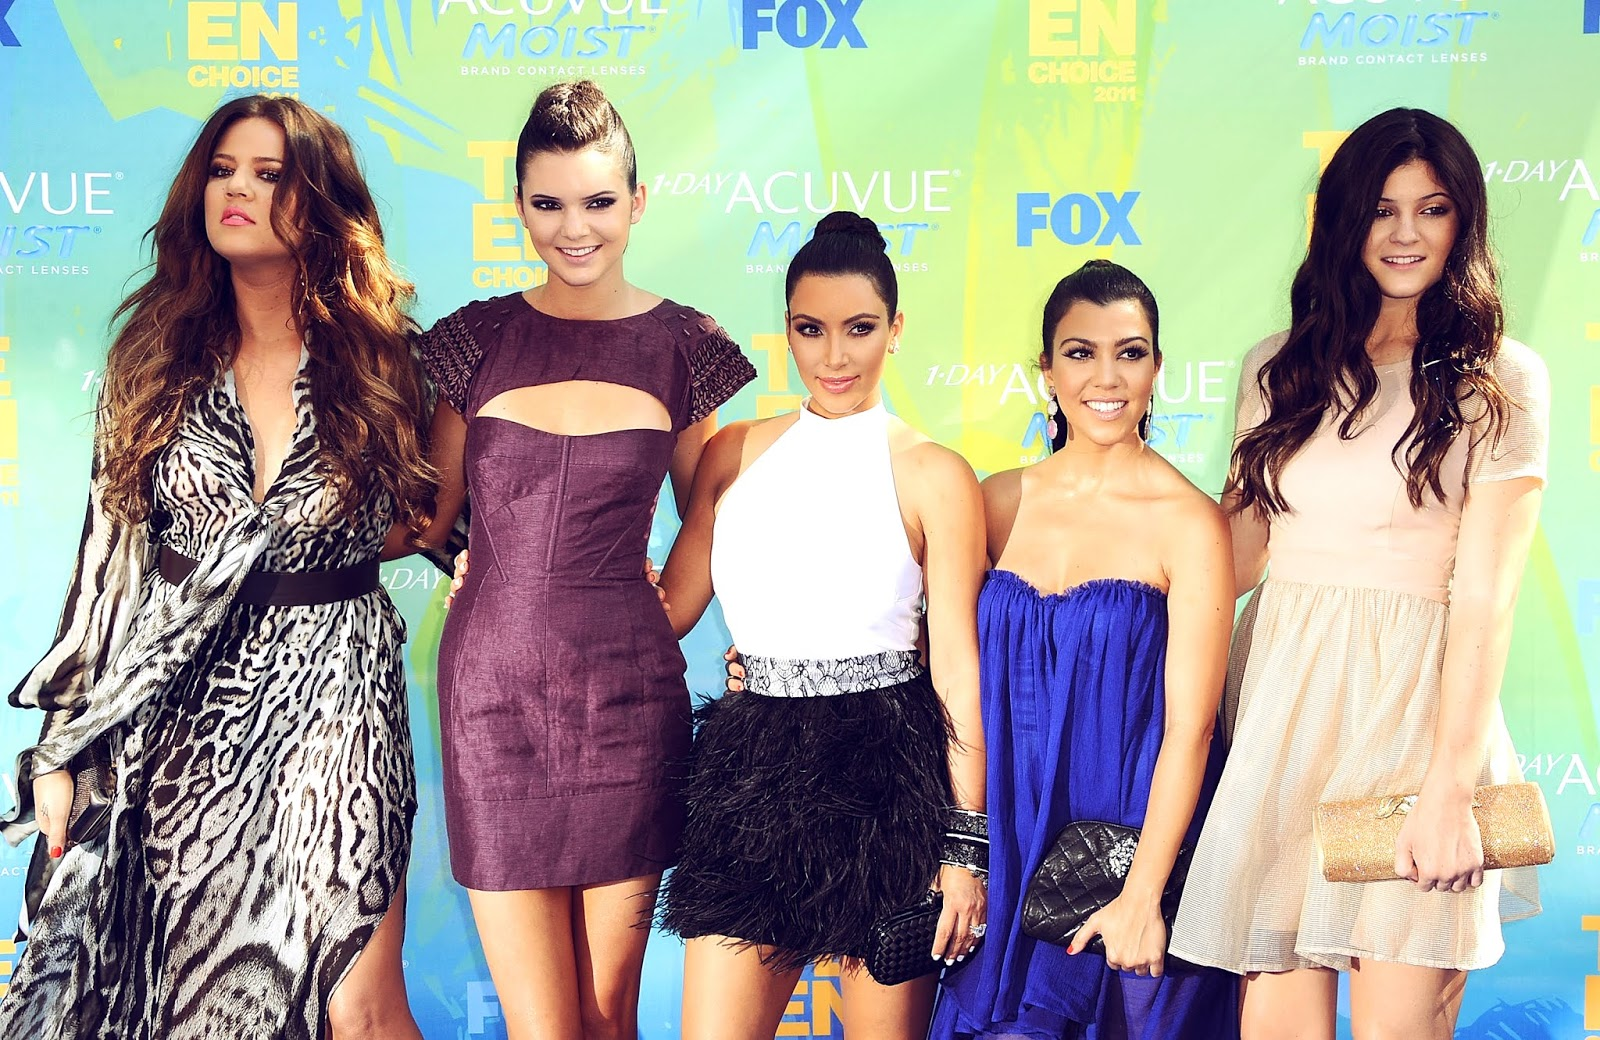 28 - Teen Choice Awards in August 11, 2011